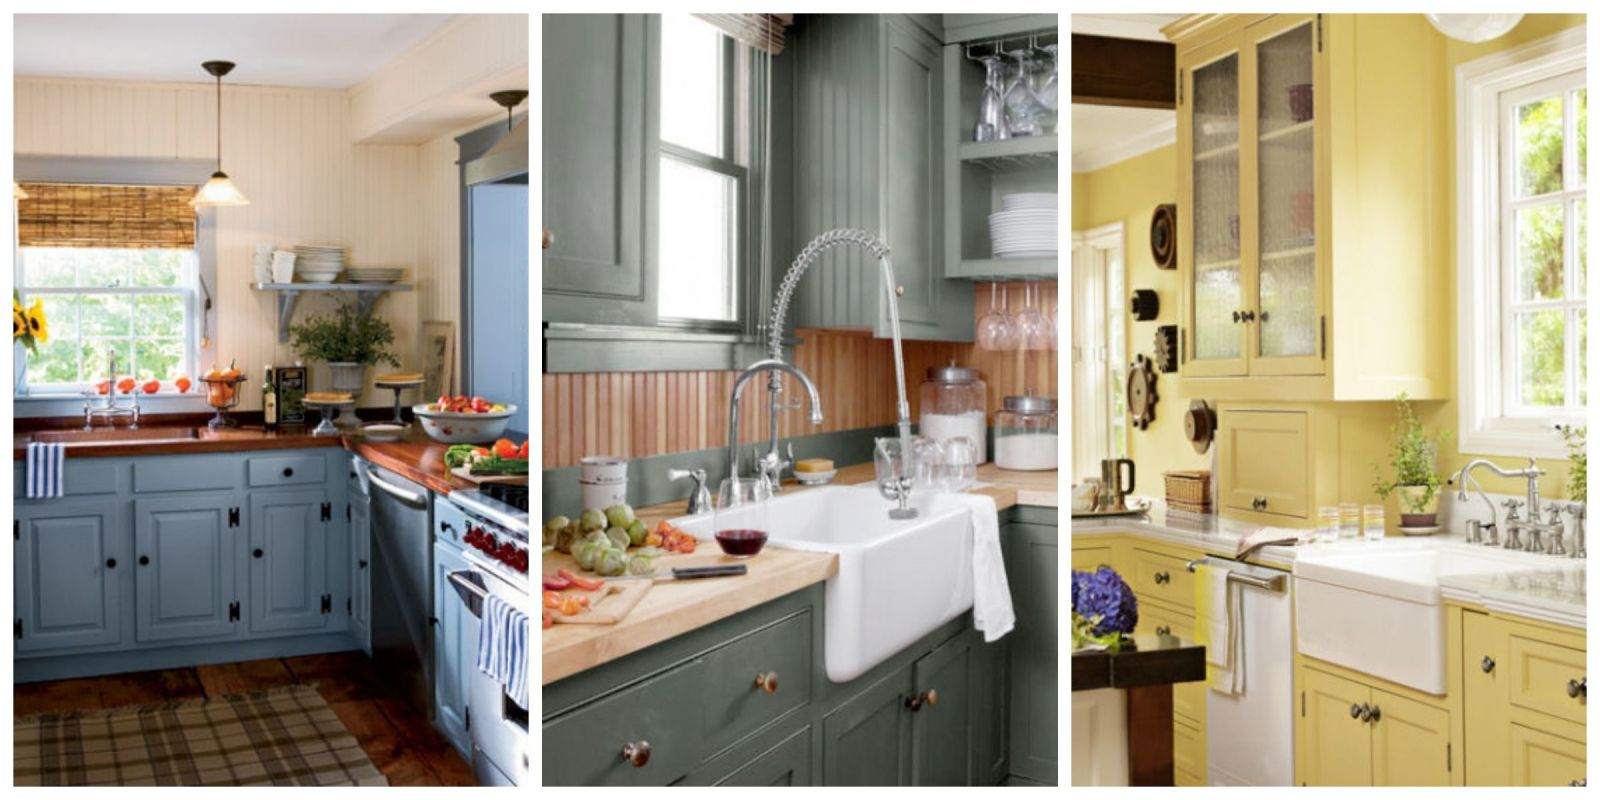 Colour Kitchen 15 Best Kitchen Color Ideas Paint And Color Schemes For Kitchens